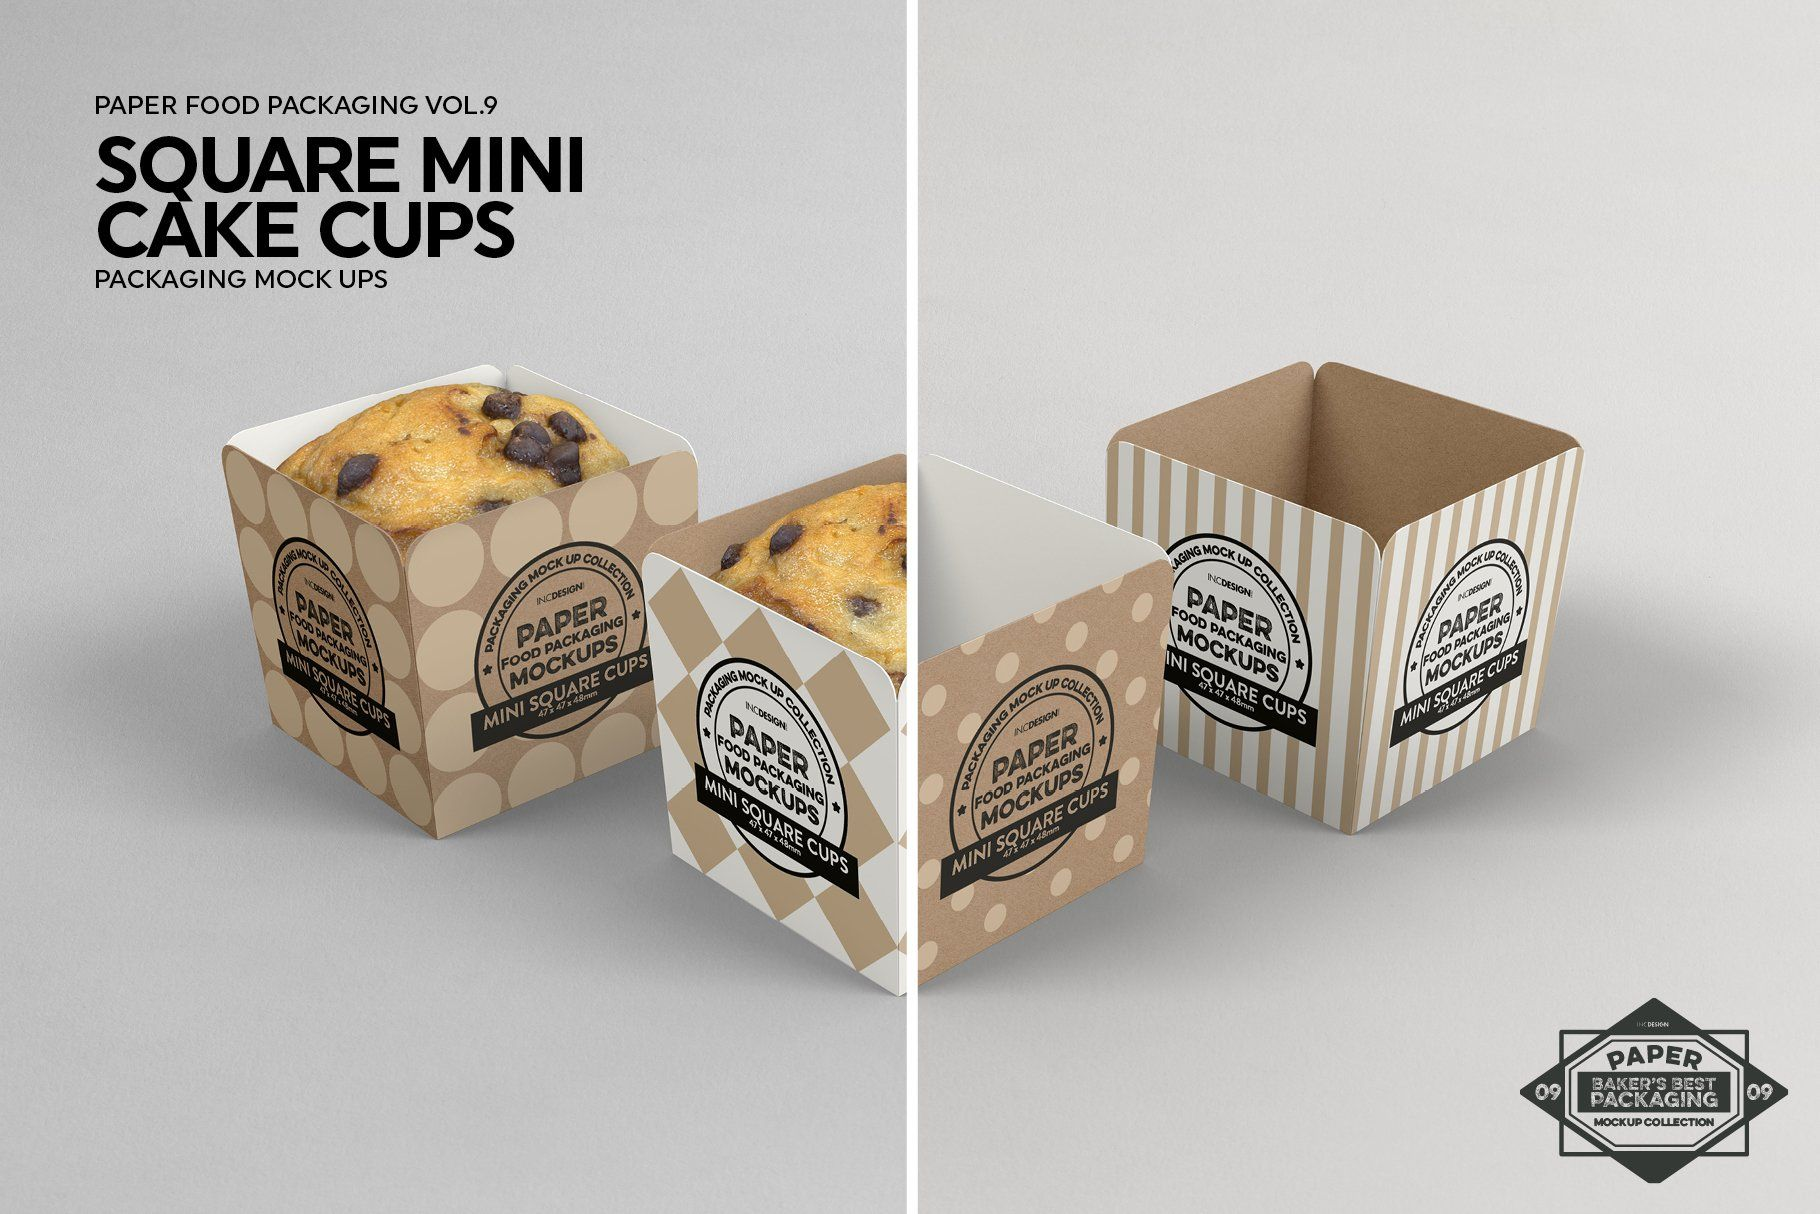 Download Square Cake Cups Packaging Mockup Square Cakes Food Box Packaging Packaging Mockup